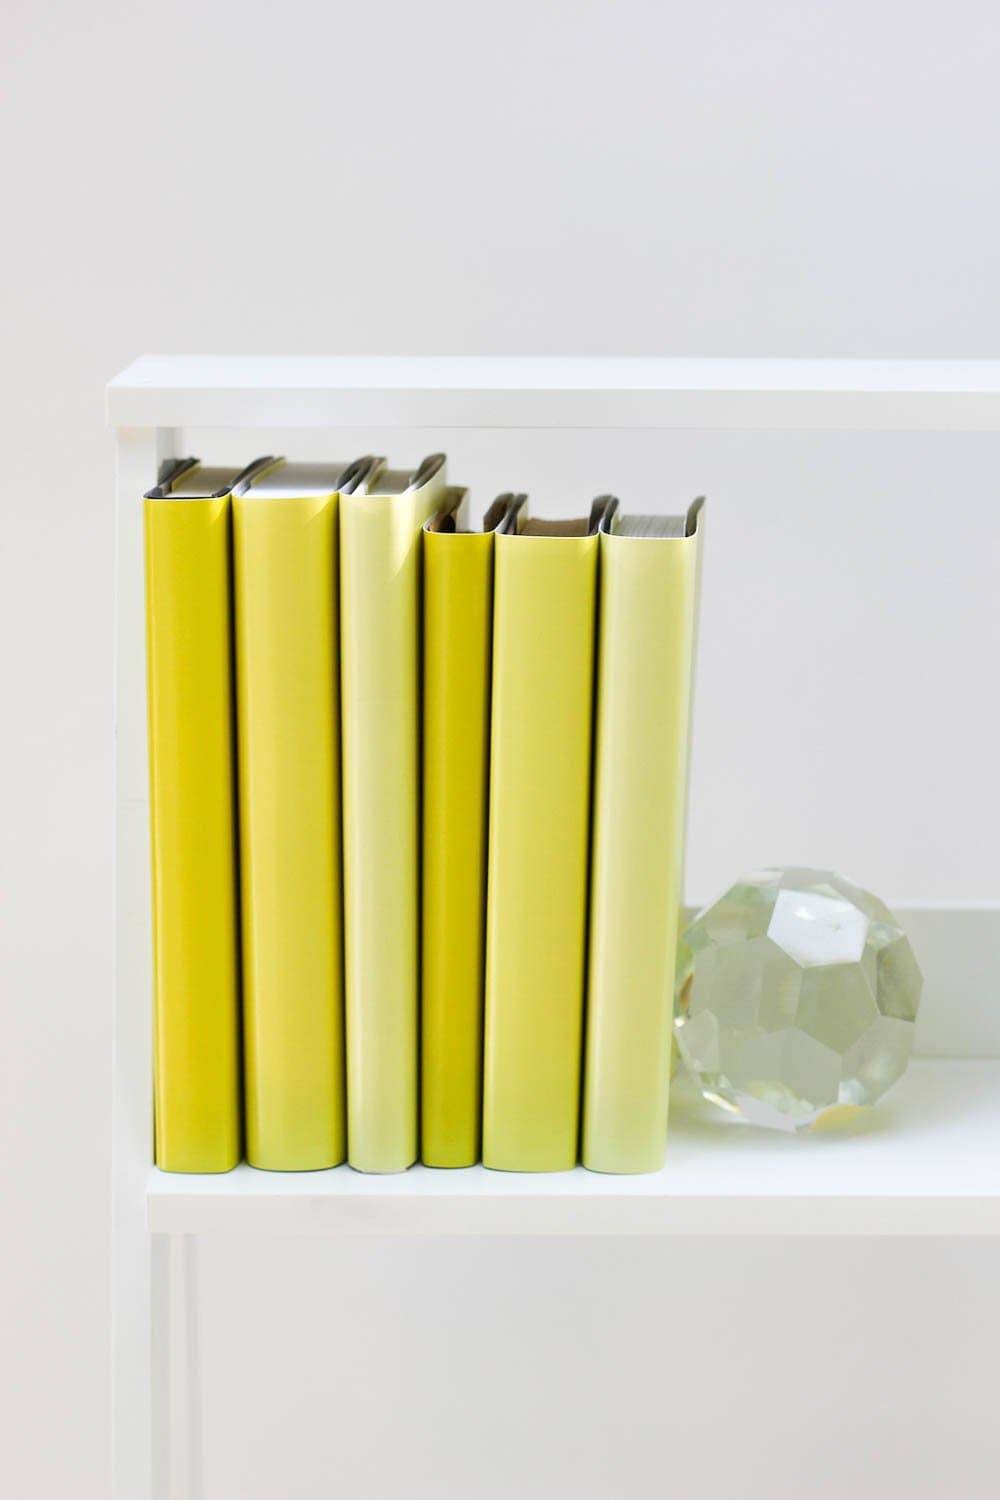 Large and small yellow books from yellow book covers